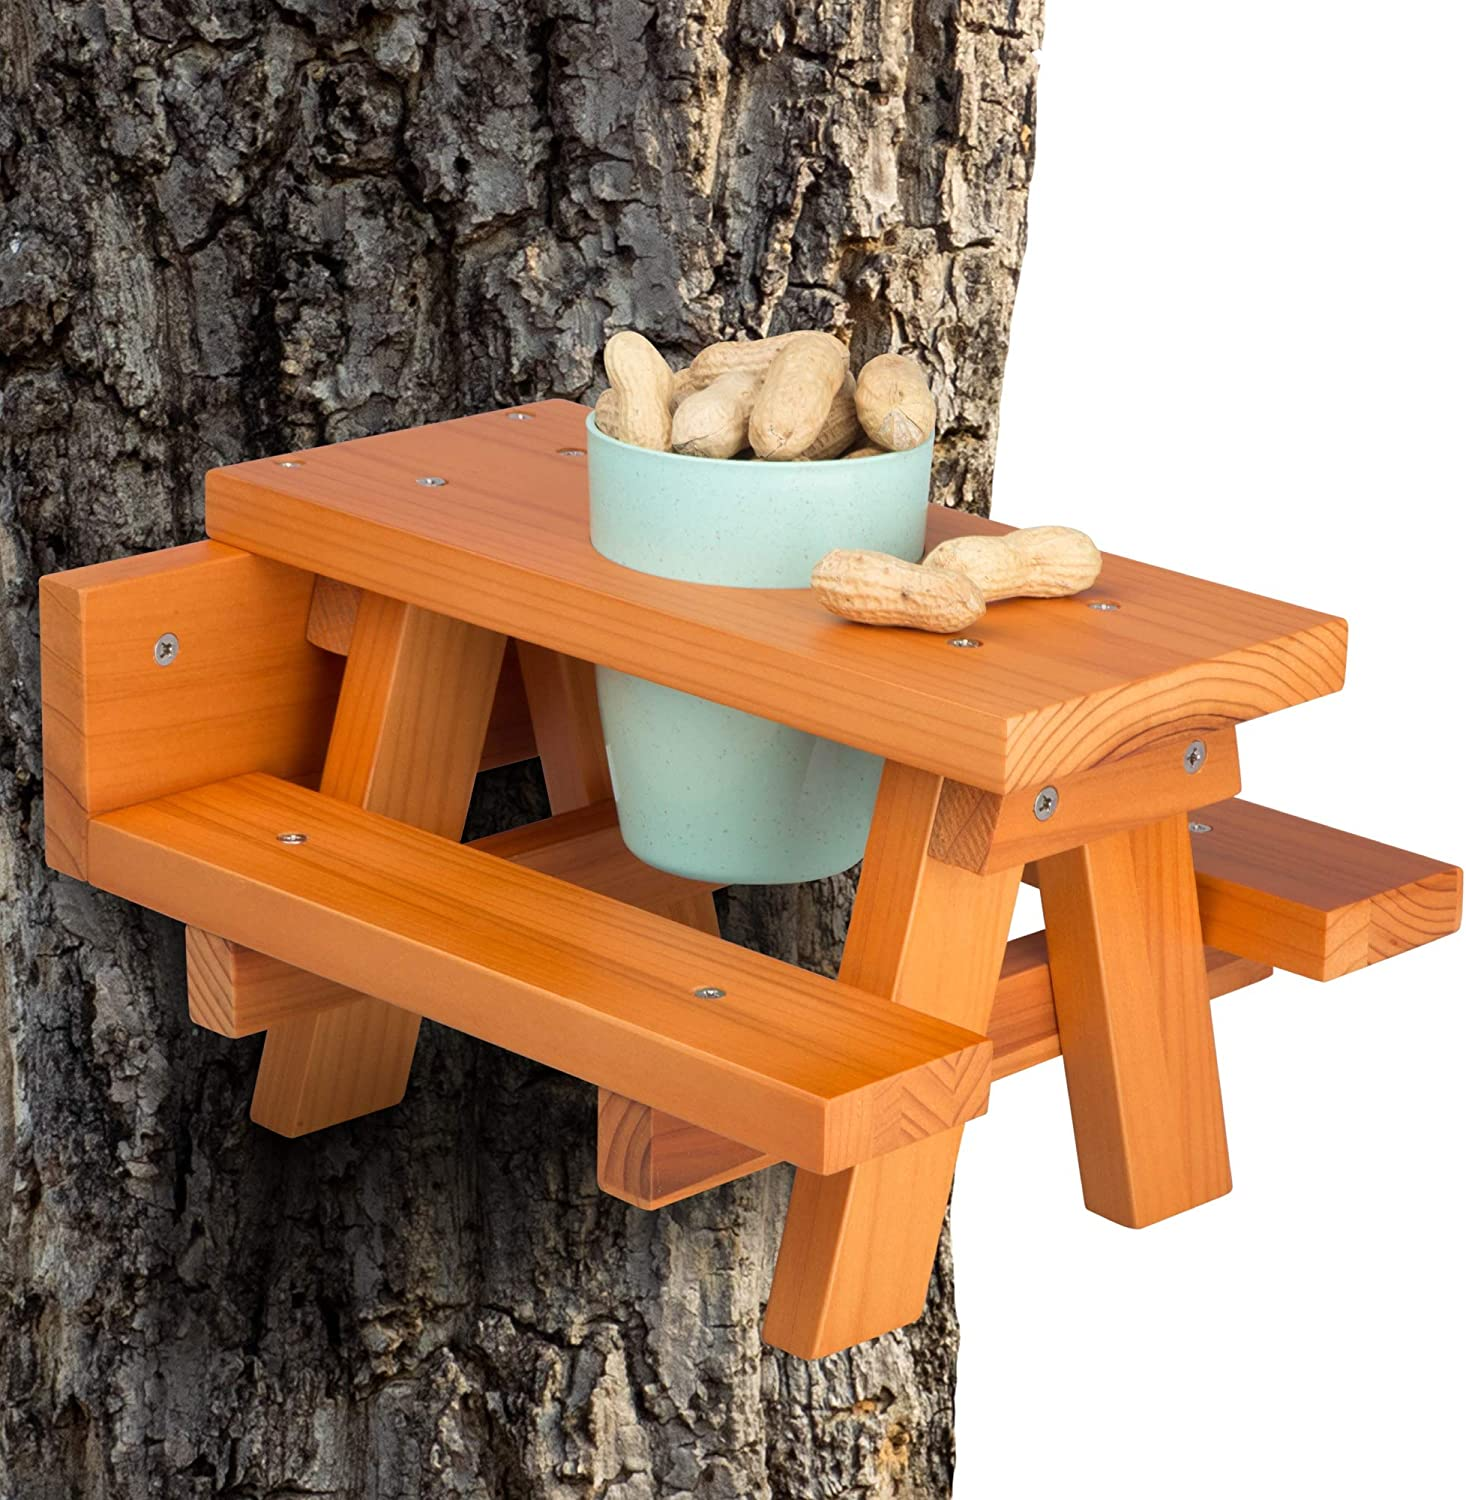 Enclave Woods Large Squirrel Feeder - Quality Squirrel Picnic Table Feeder for Fence or Tree - Safe Picnic Table for Squirrels with Cup - Customizable Food Options - Nuts, Berries, Fruits - Funny Gift